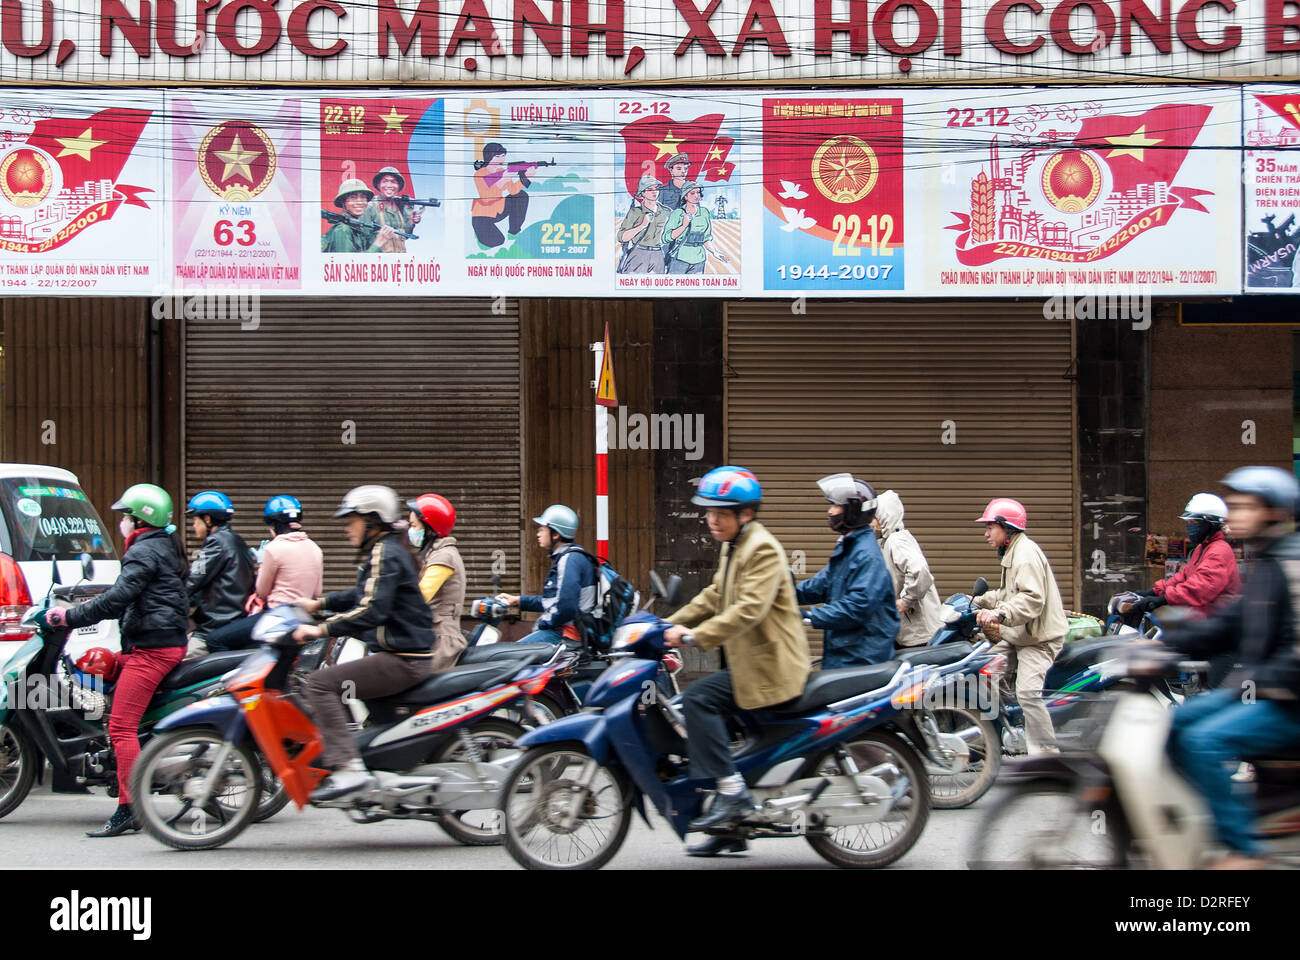 Unidentified men and women drive their motorcycles on January 14, 2008 in Hanoi, Vietnam. Stock Photo